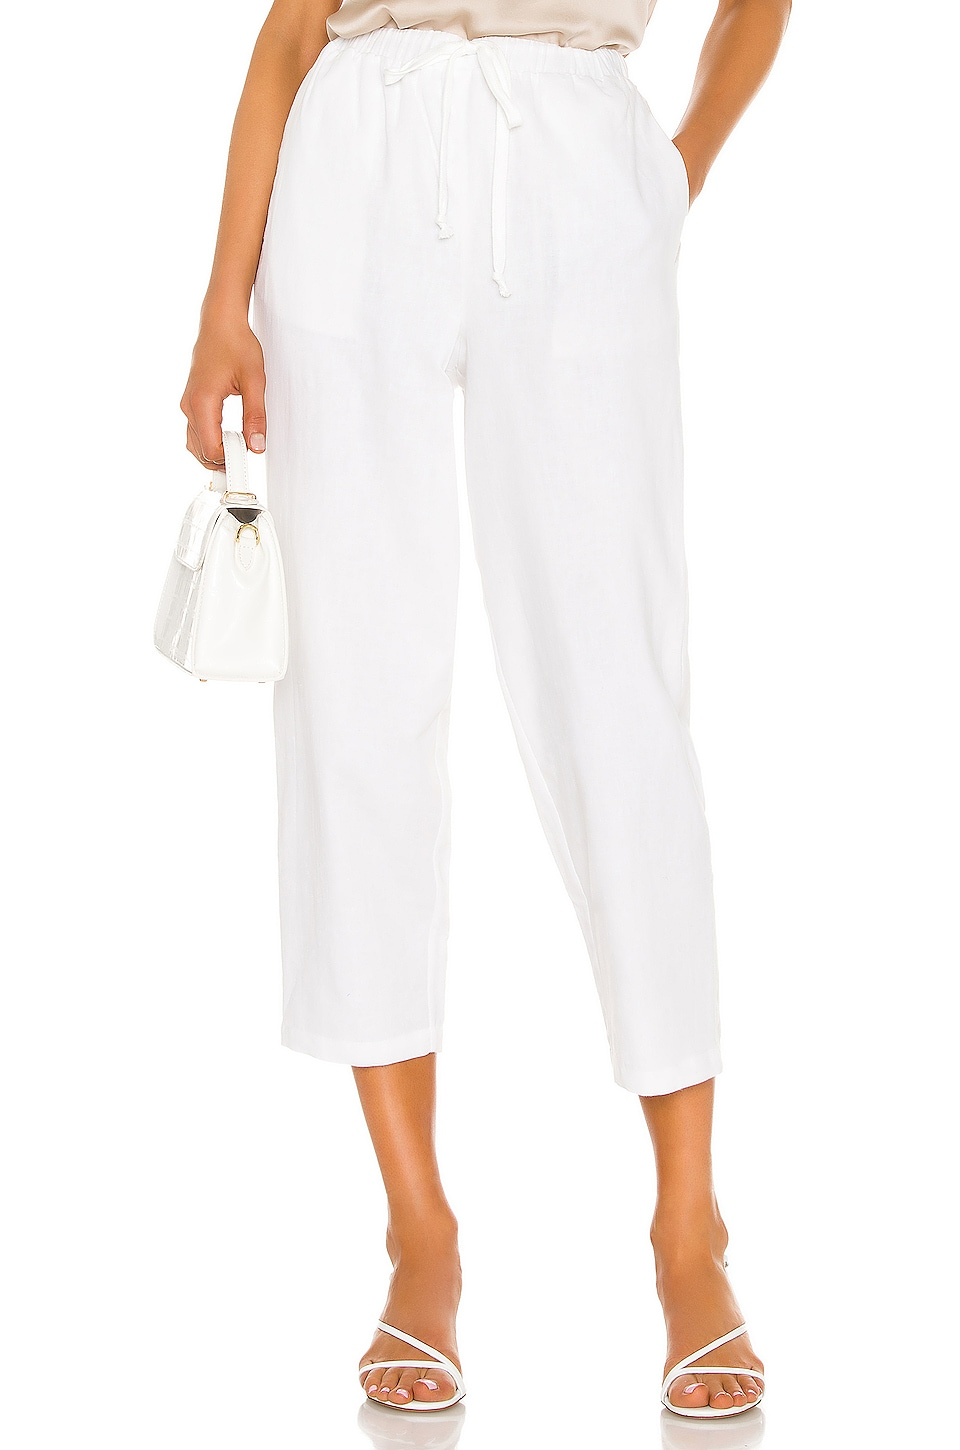 L'Academie The Ari Pant in White